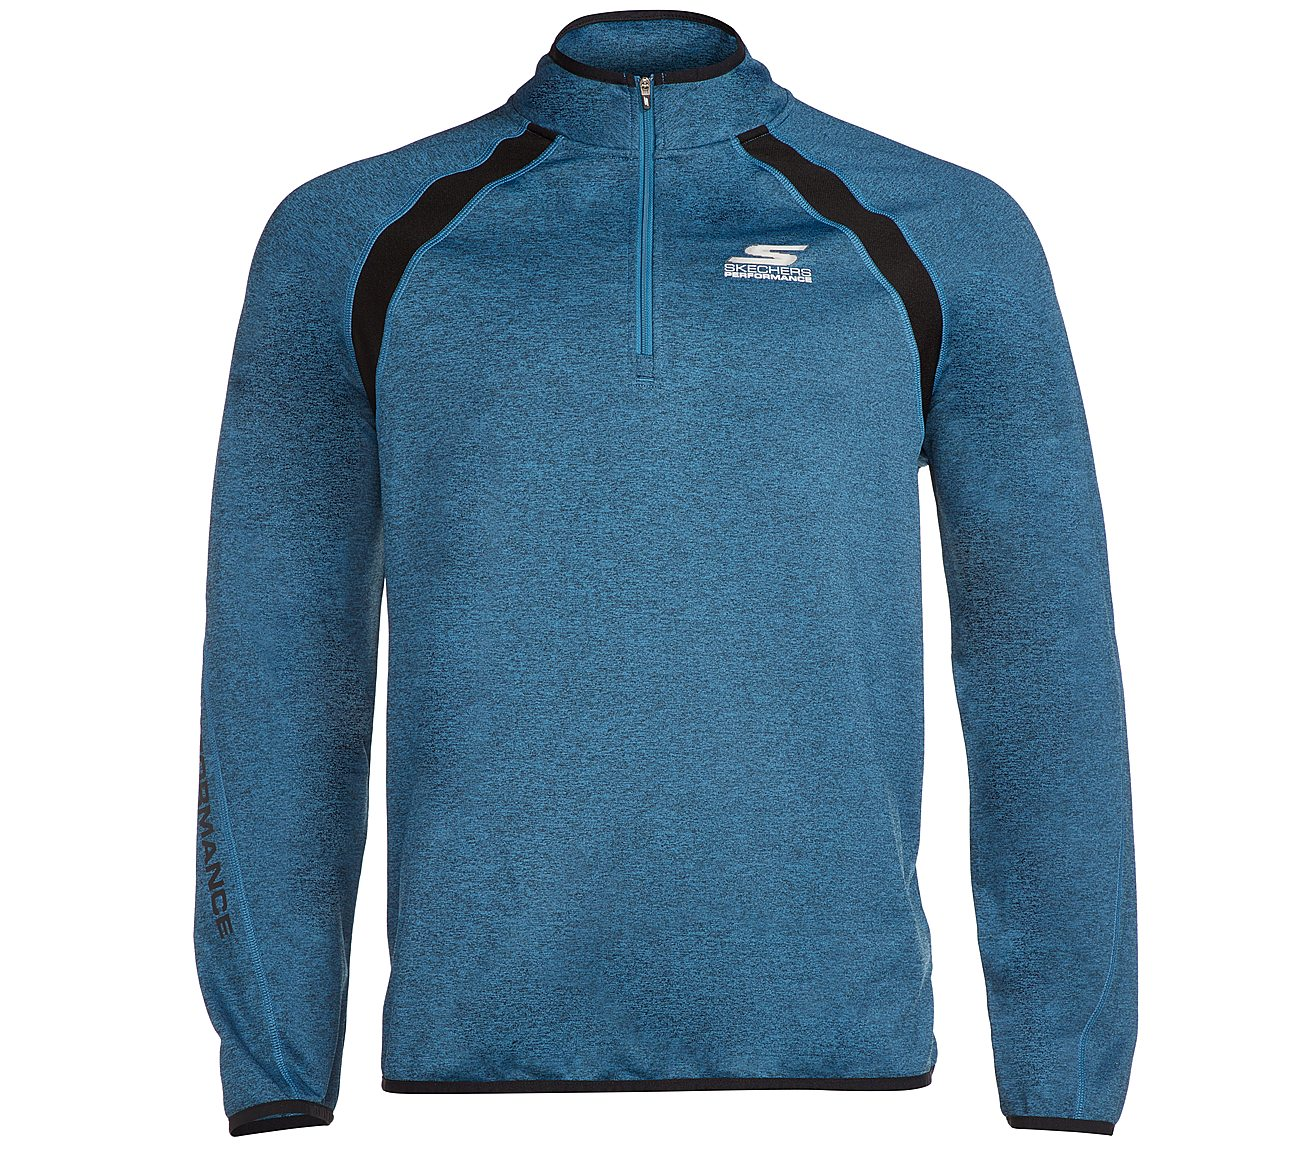 Windchill 1/4 Zip Sweatshirt